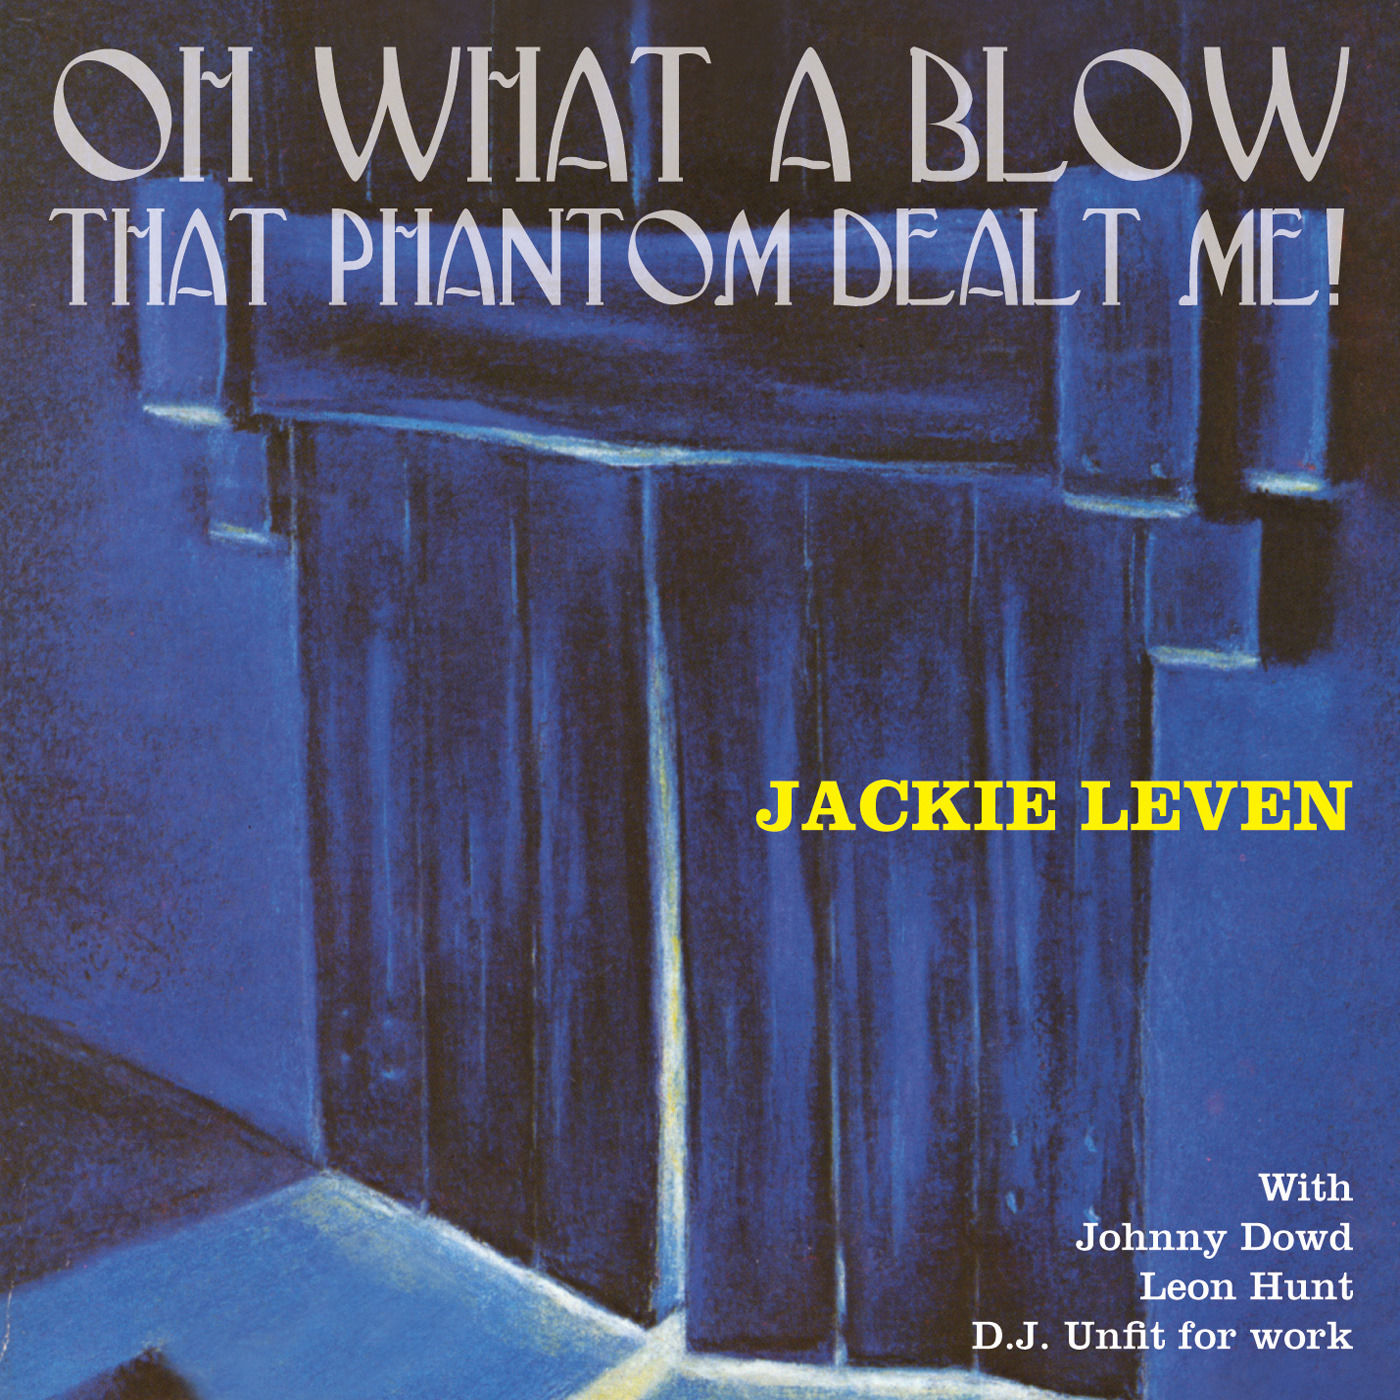 Artist:  Jackie Leven   Title:  Oh What a Blow that Phantom Dealt Me!   Label:  Cooking Vinyl   Credit:  Additional Engineering   Year:  2006